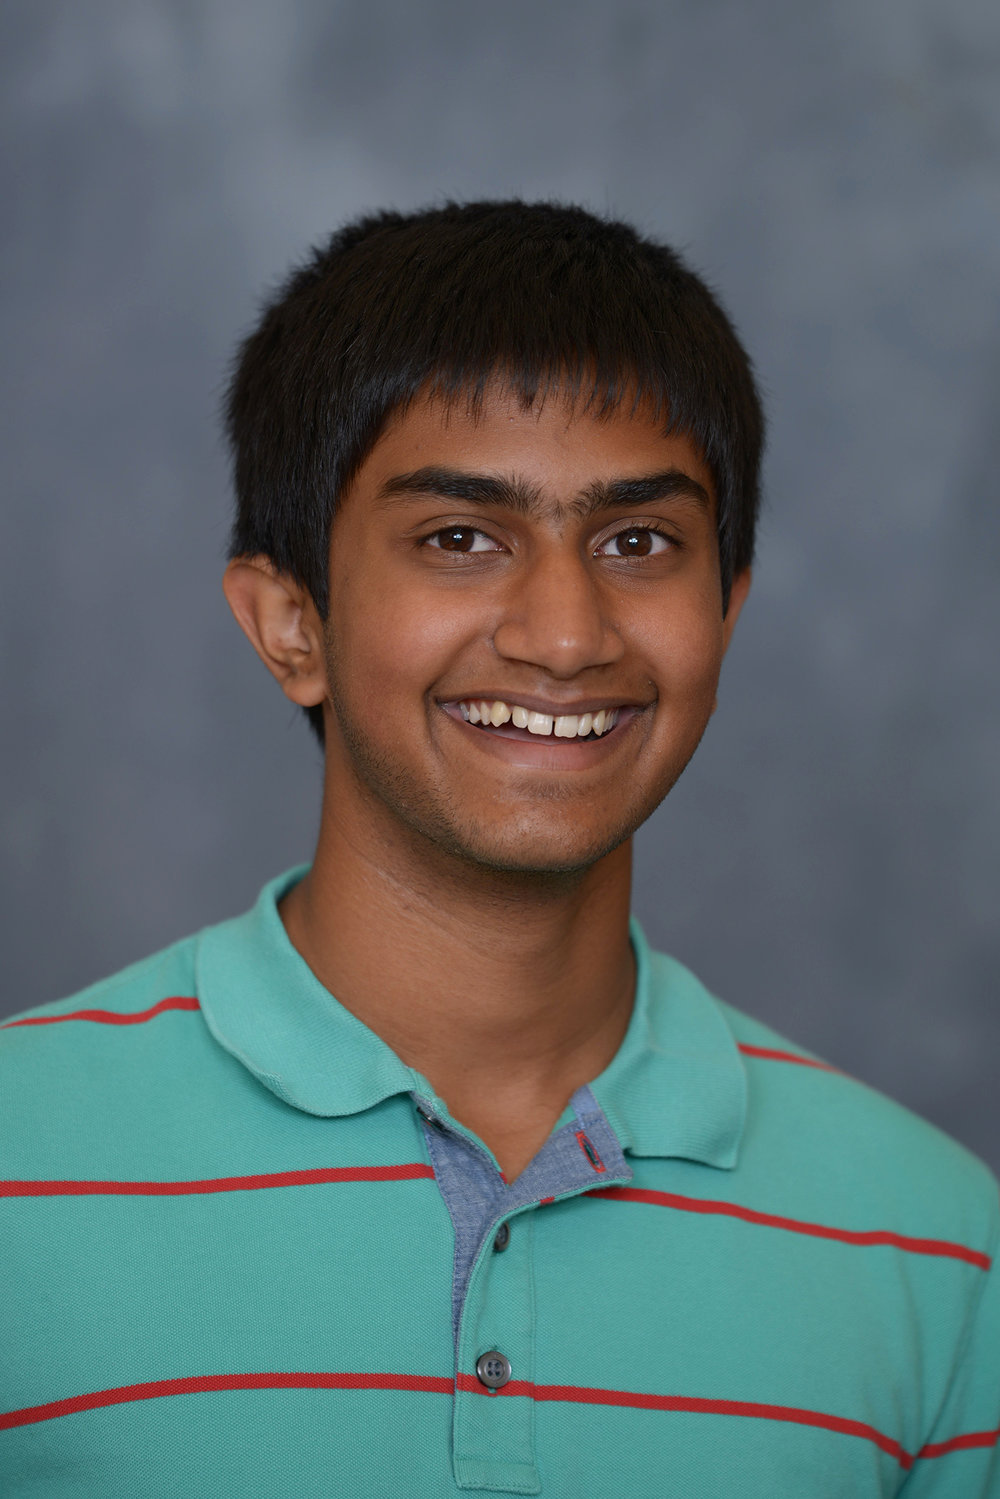 Aditya Krishnaswamy   Policy Coordinator (Research)    Year:  Class of 2020   Majors:  Mathematics, Statistics   Minors:  Public Health   Policy Interests:  Technology, Healthcare, Education   If you could take anyone out to dinner, dead or alive, who would it be?  Uncle Joe Biden